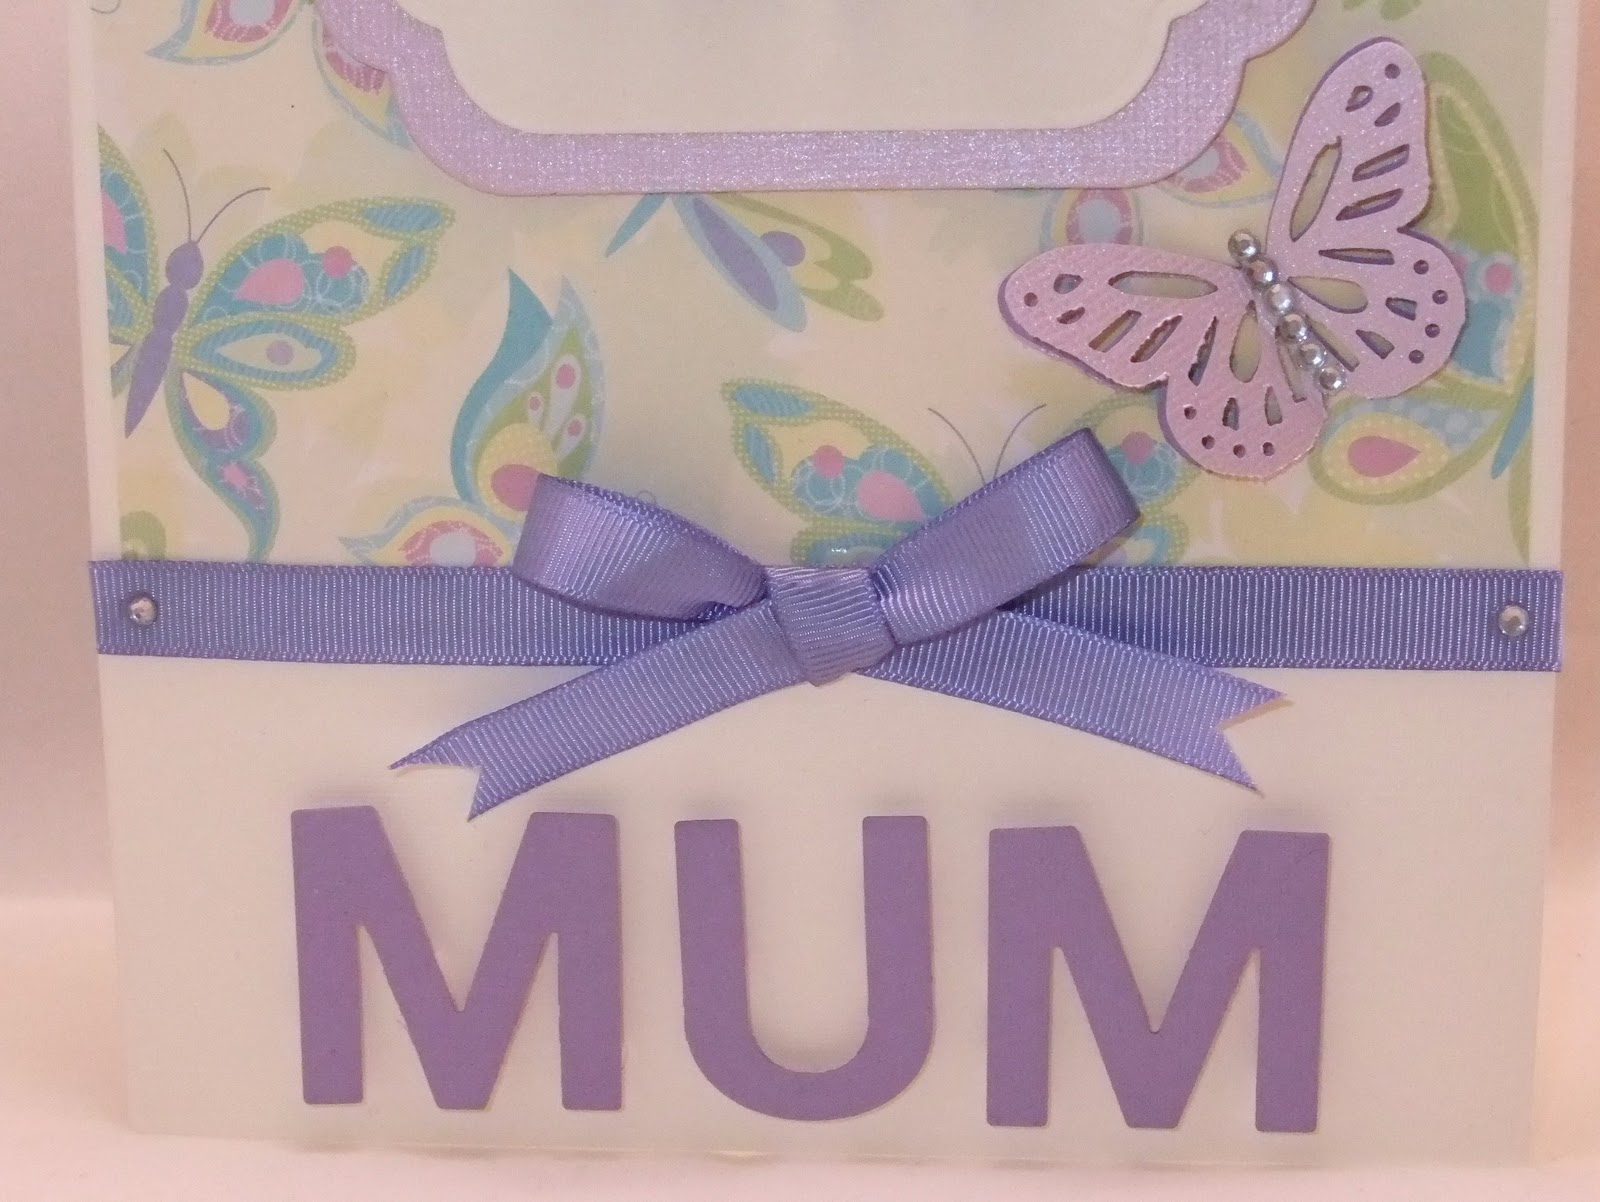 A Day in the Life of a Craft Fairy Mum 65th Birthday Card with – Mum 65th Birthday Card